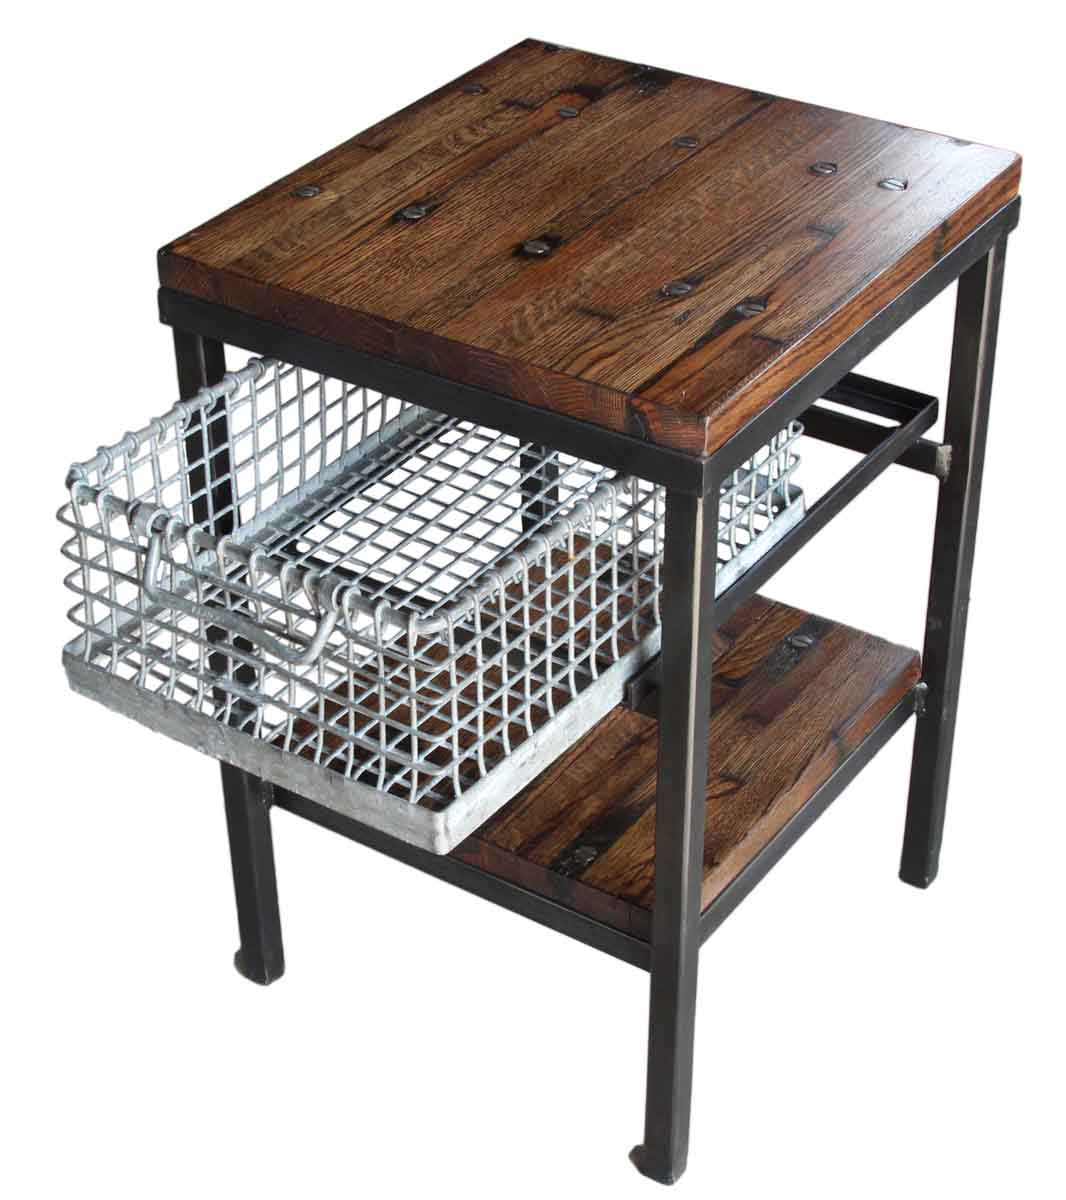 Galvanized Basket Night Stand or Side Table with Storage